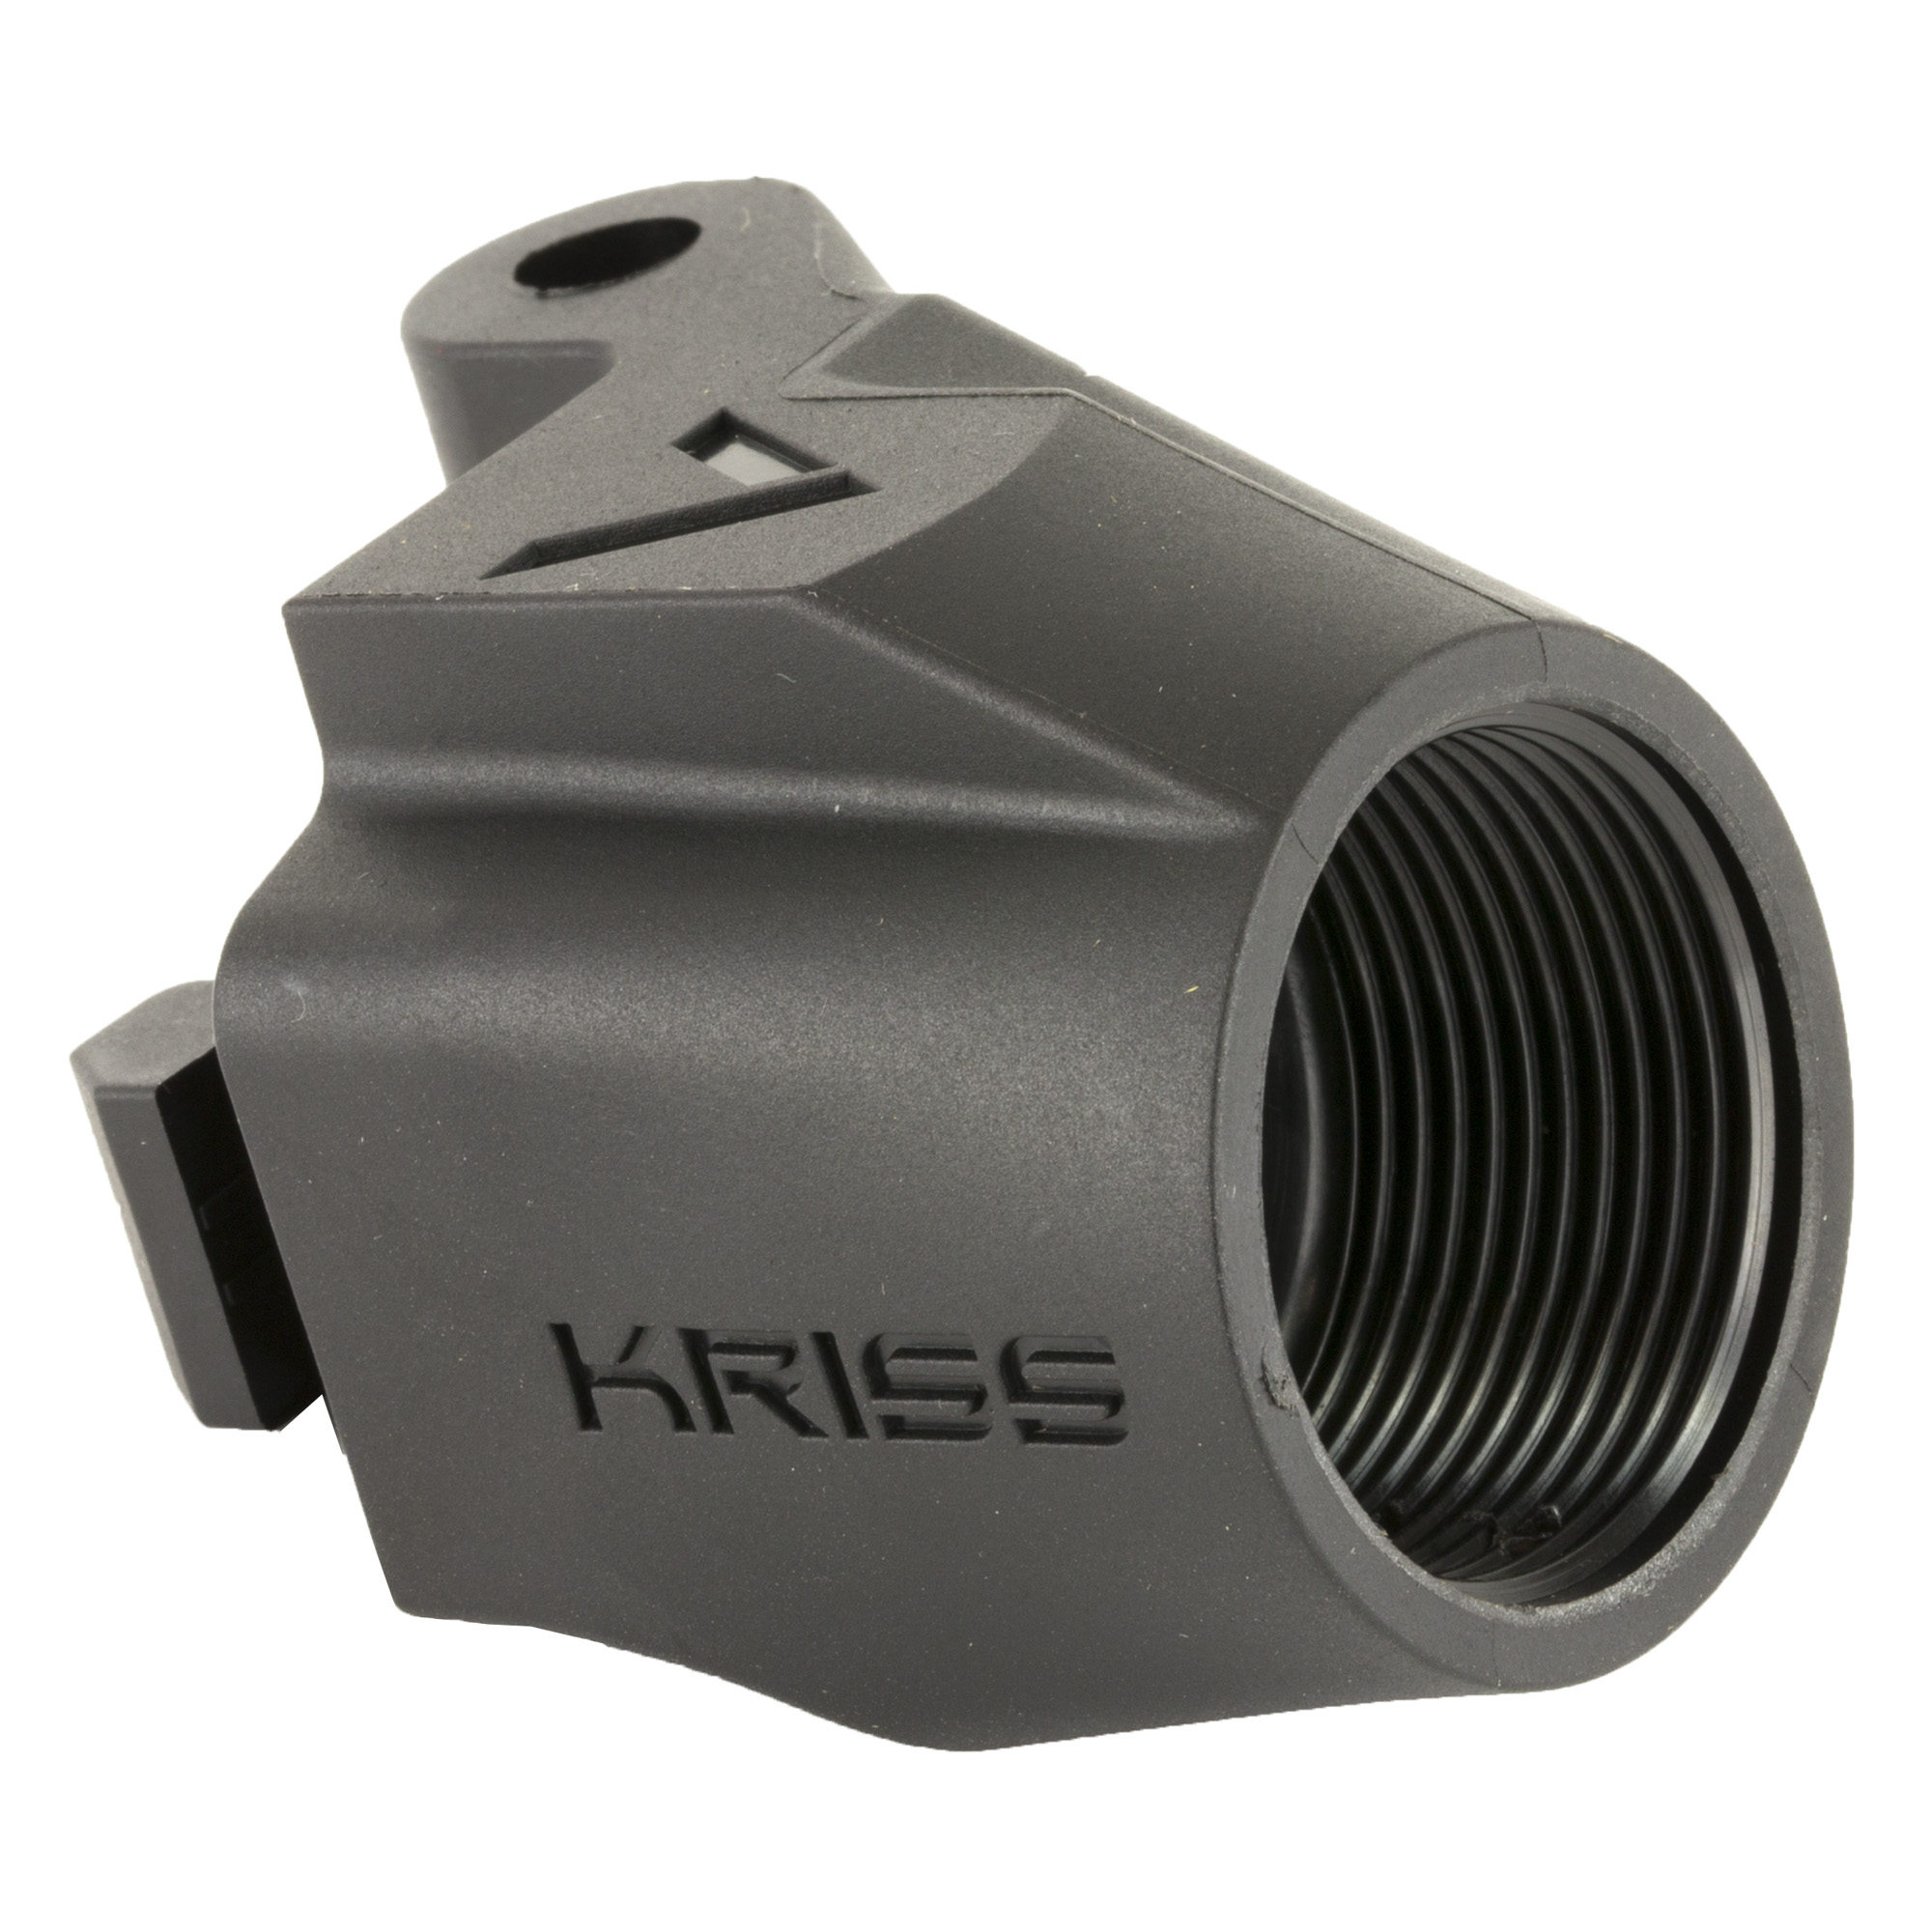 """KRISS USA's Vector M4 Stock Adaptor opens up a new realm of possibilities to customize your KRISS GEN I or GEN II Vector. In place of the traditional Vector Stock"""" this threaded adaptor piece will accept any commercial or MILSPEC buffer tube for the addition of any stock of your preference. Buffer tube and pivot pin is not included."""